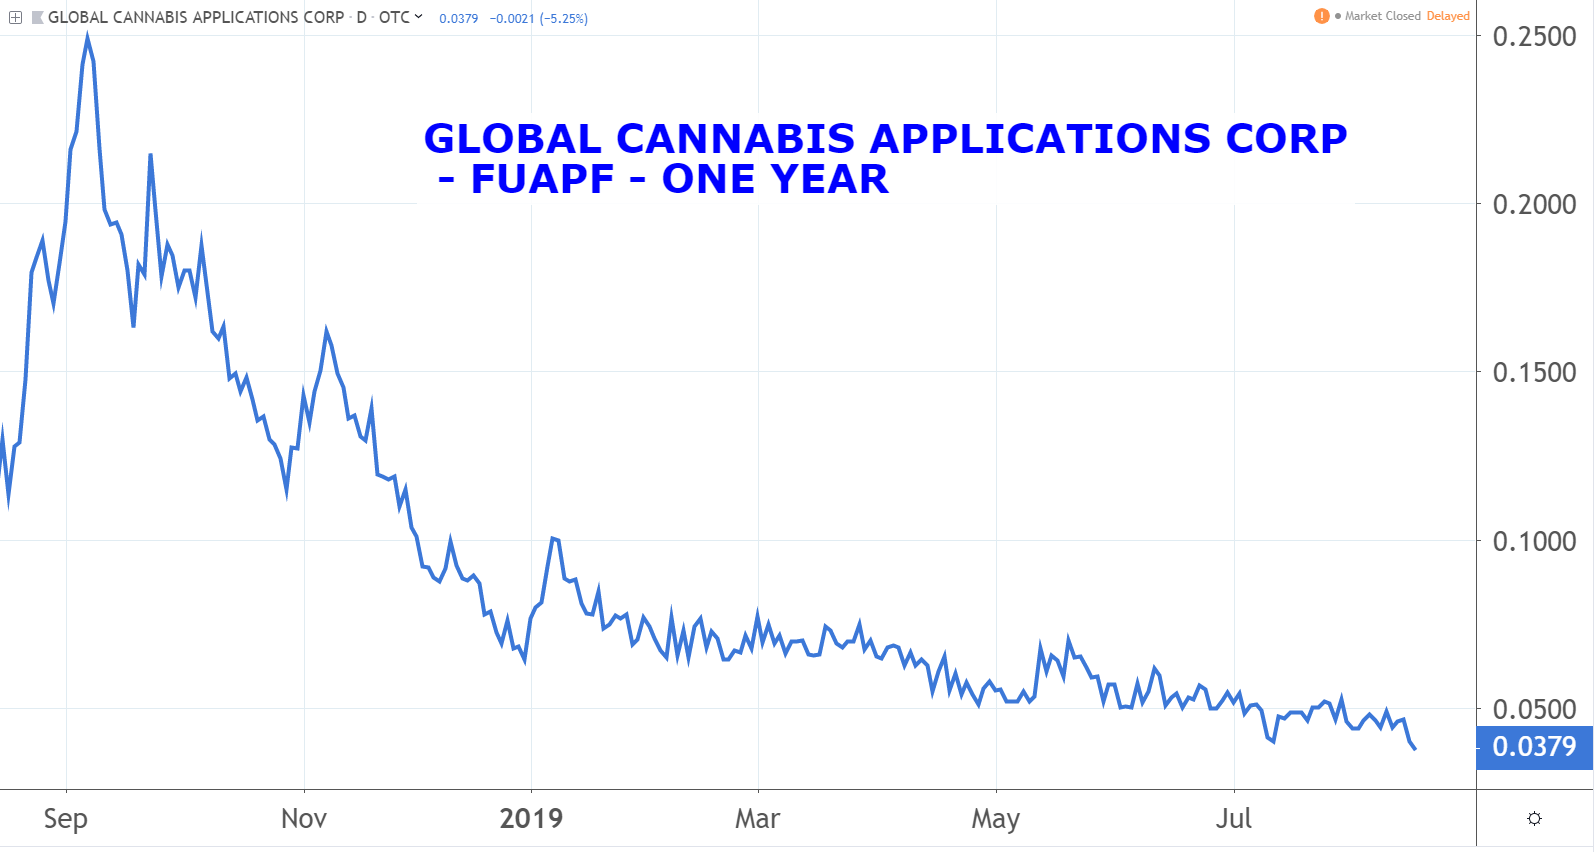 Global Cannabis Applications Corp (FUAPF) marijuana penny stocks